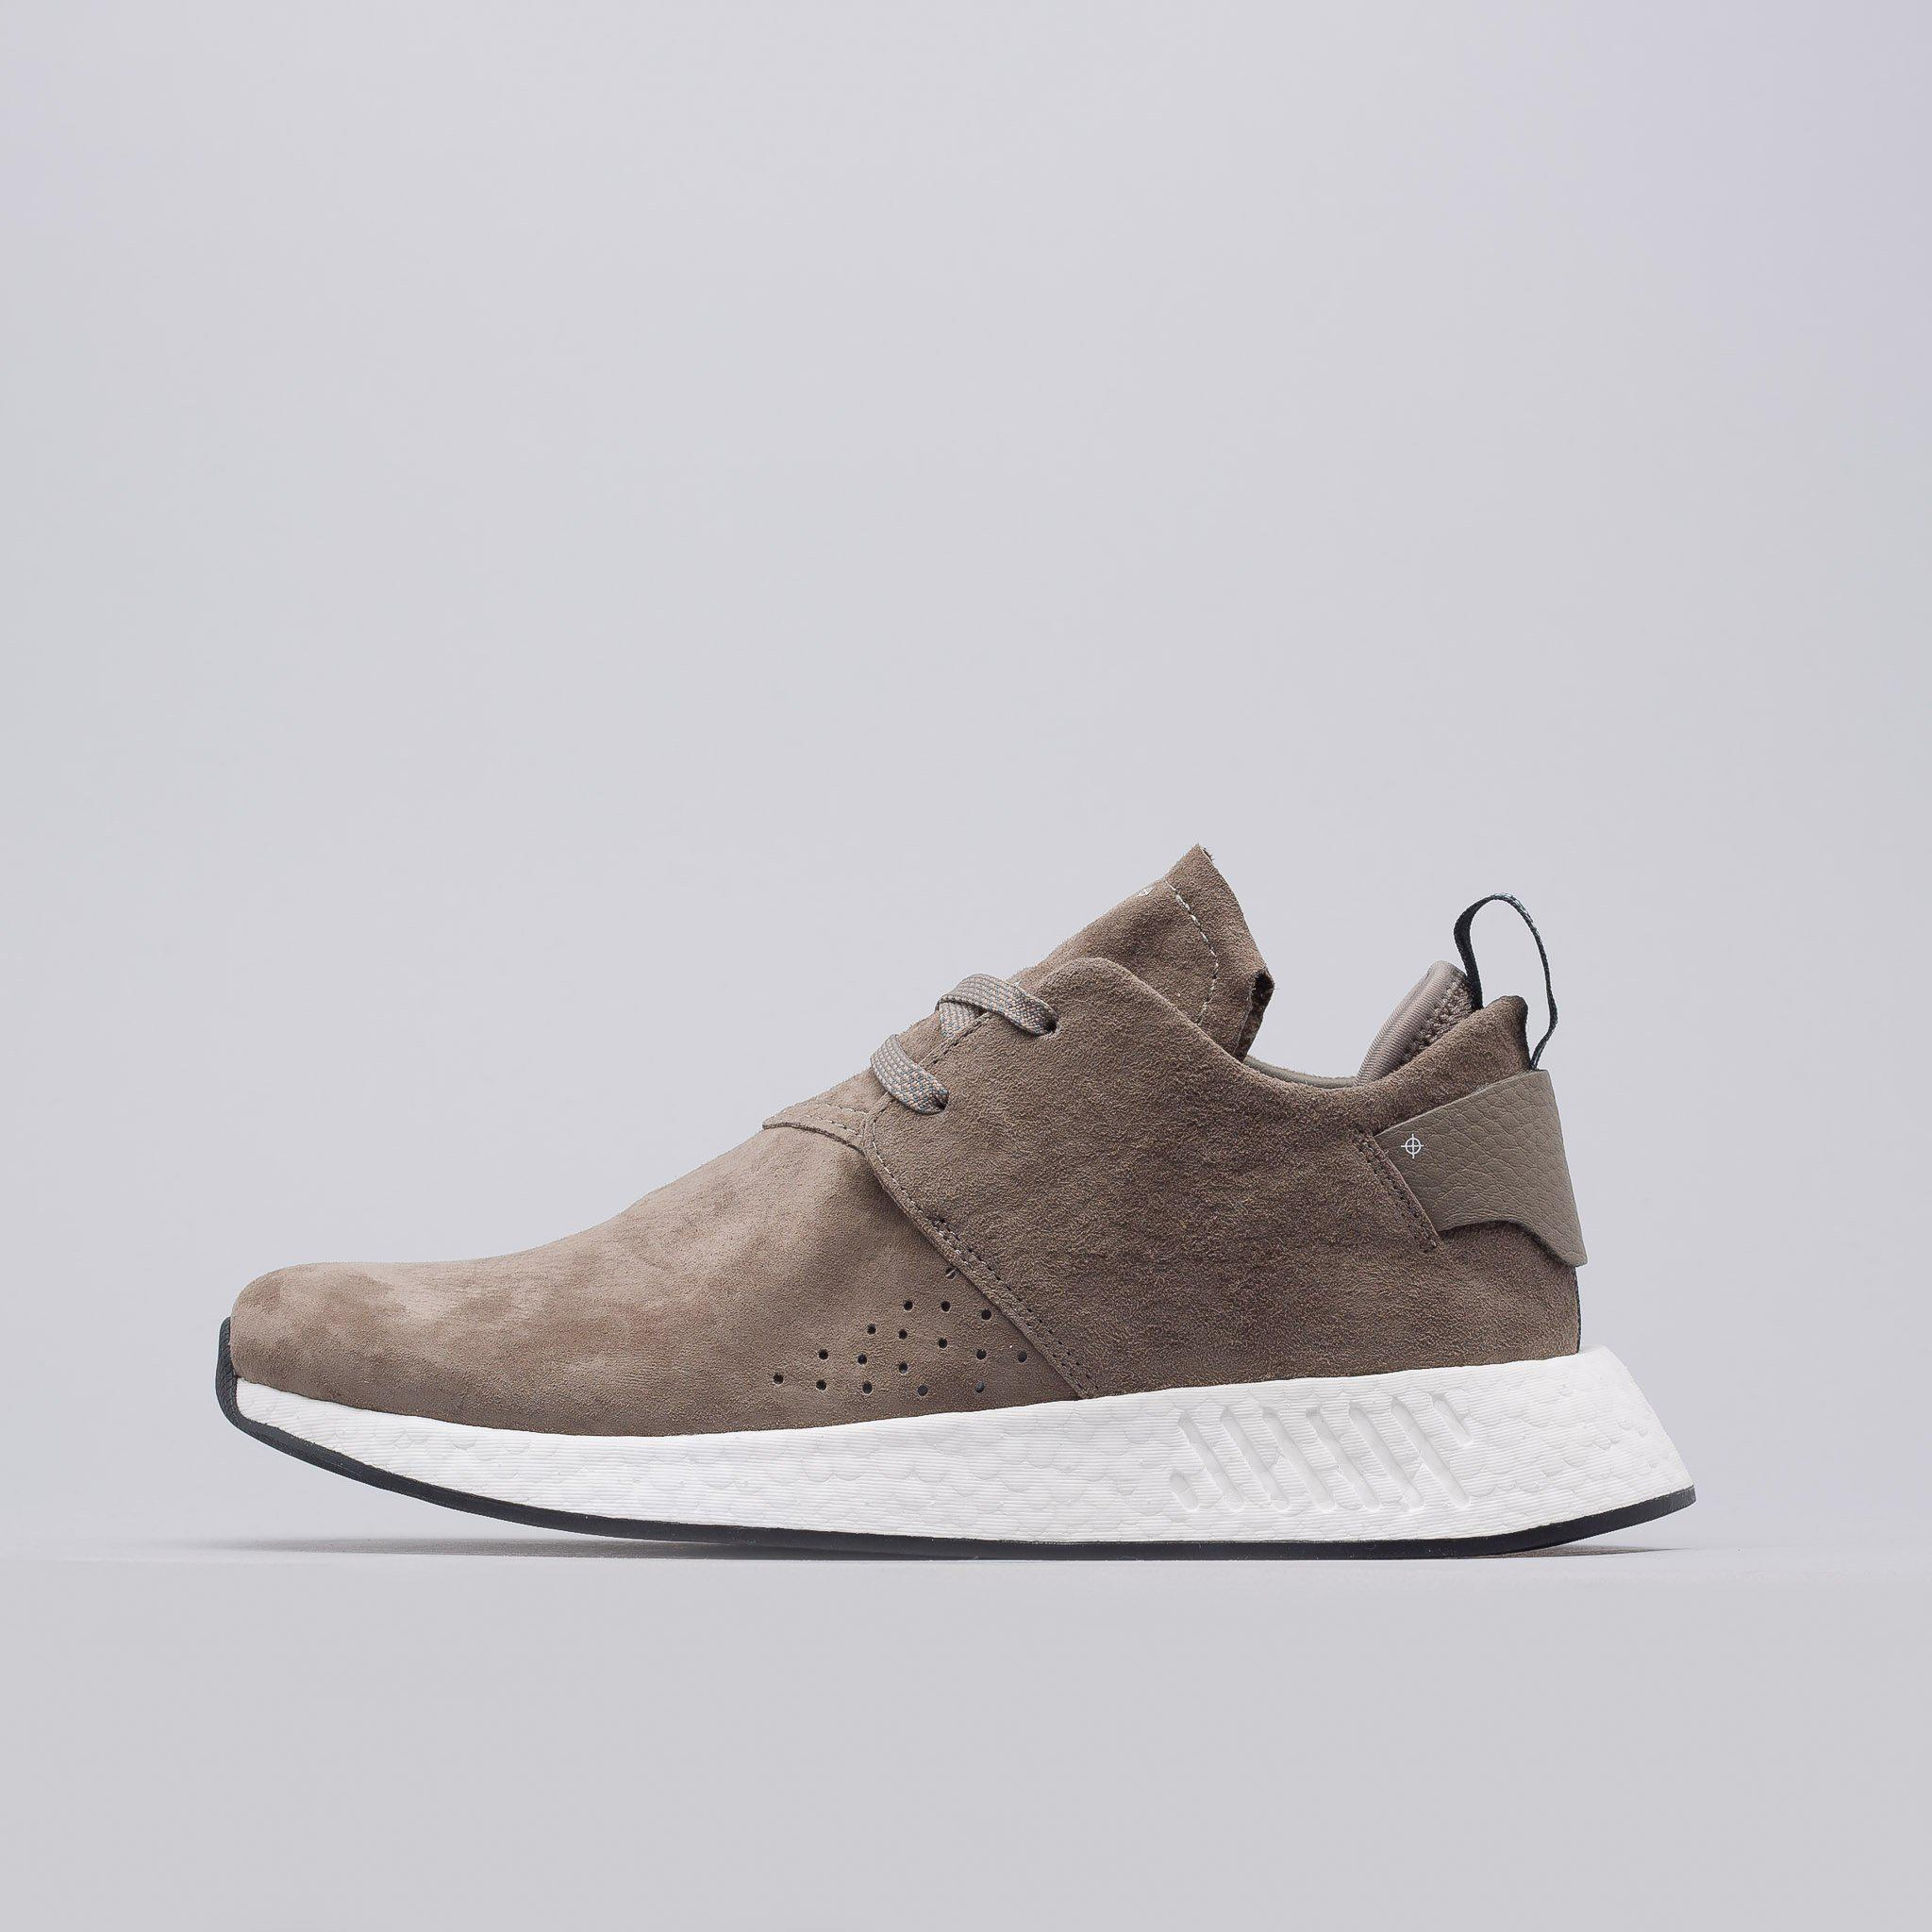 a9d3b6da5 Lyst - adidas Nmd C2 In Simple Brown in Brown for Men